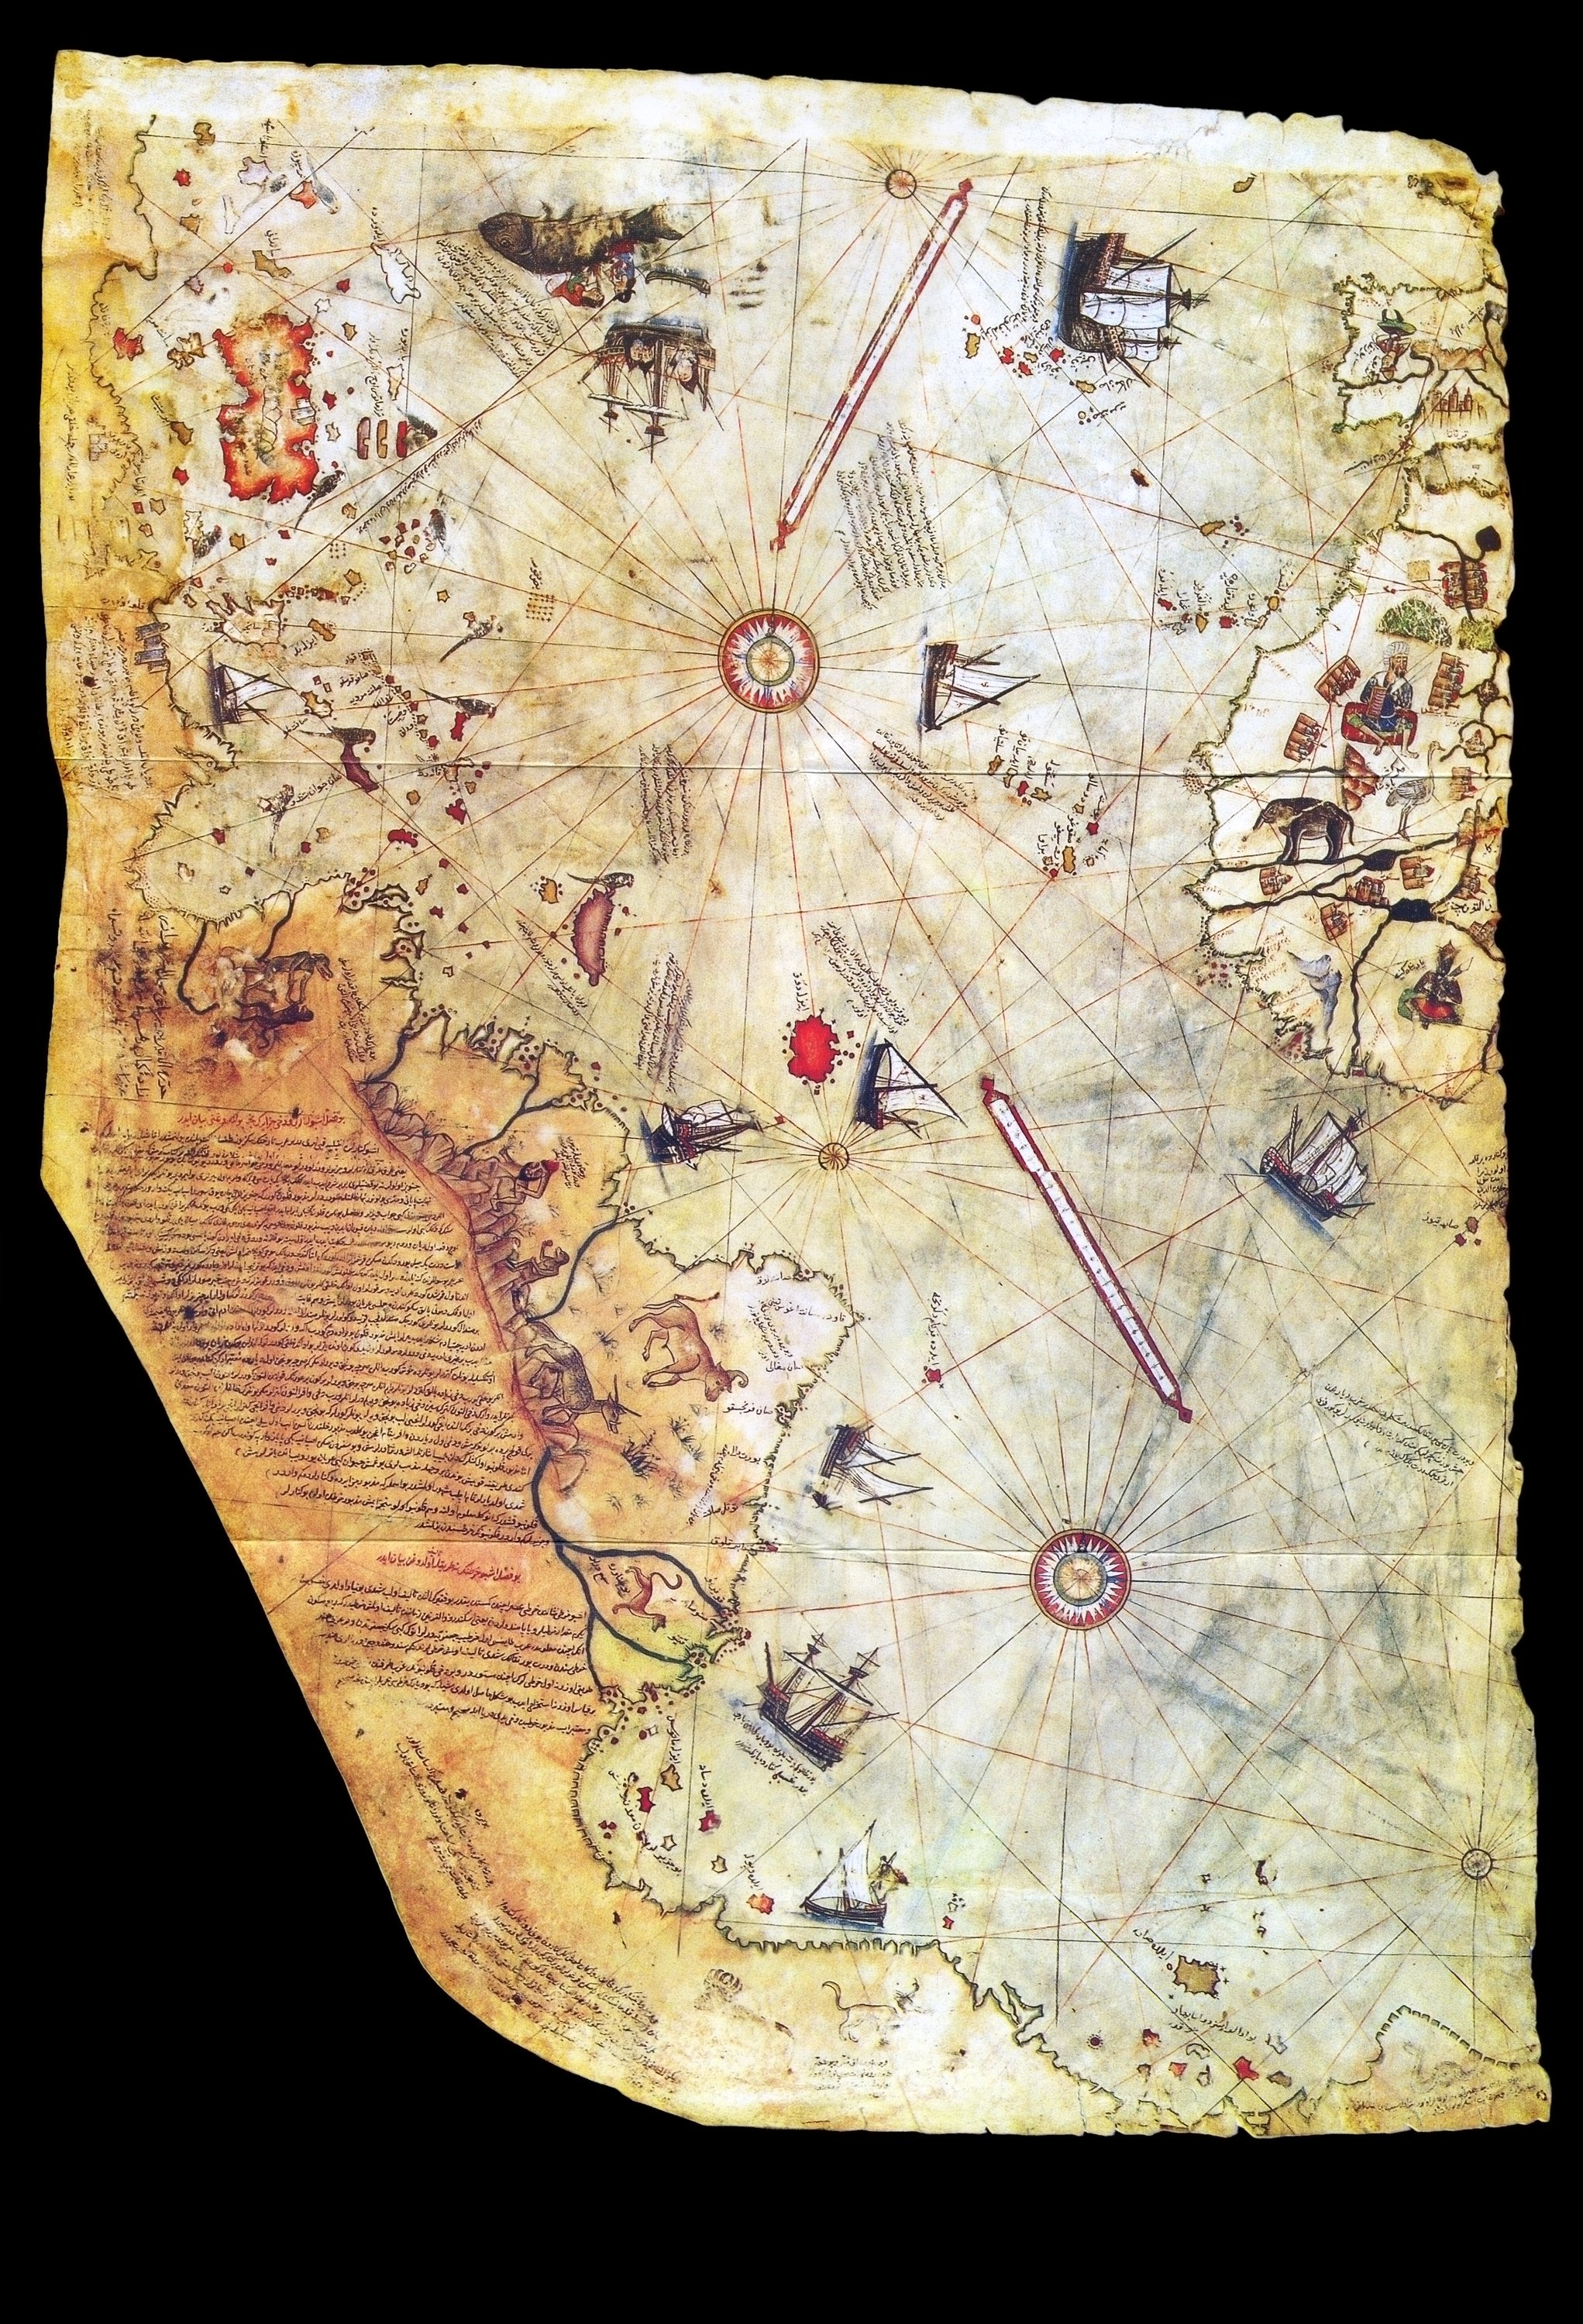 A small part of Piri Reis' world map, prepared in 1513, was discovered in 1929 at Topkapı Palace in Istanbul. (iStock Photo)